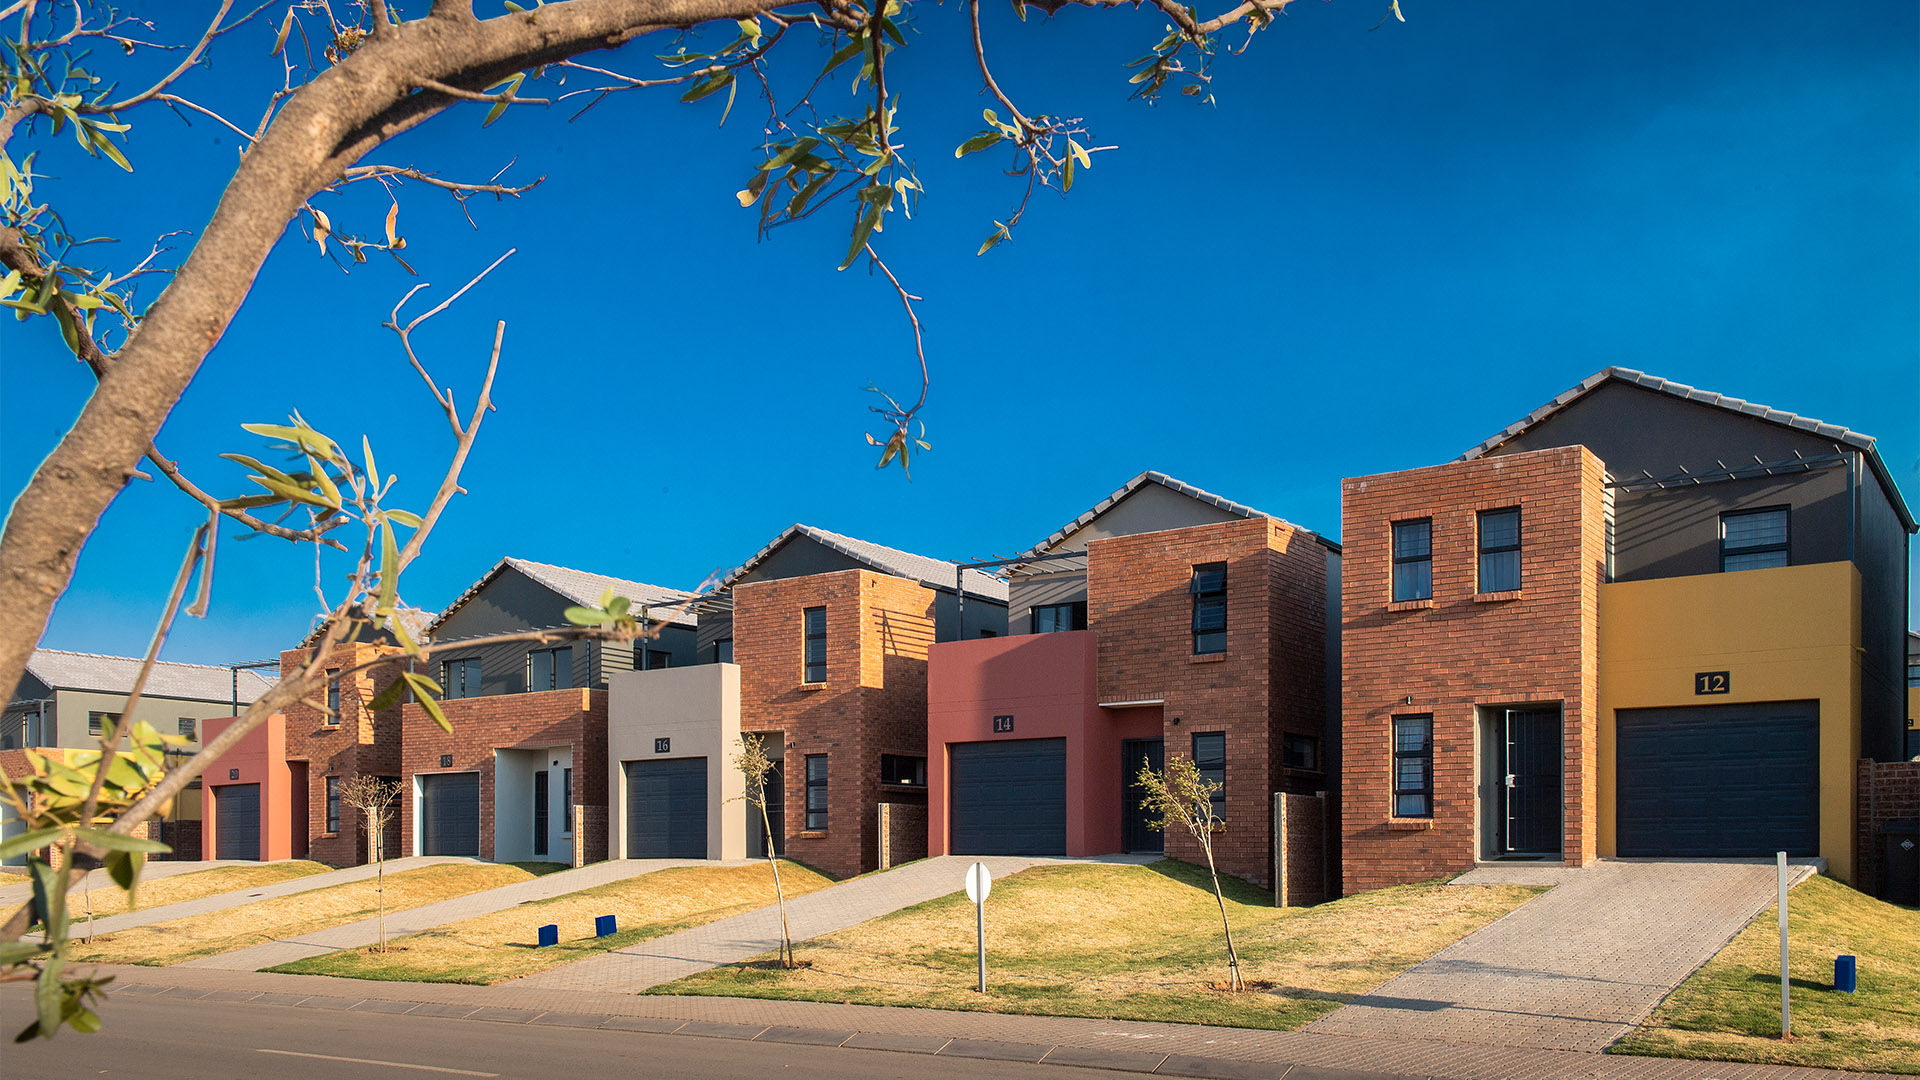 A property development opportunity in South Hills from PropertyClan